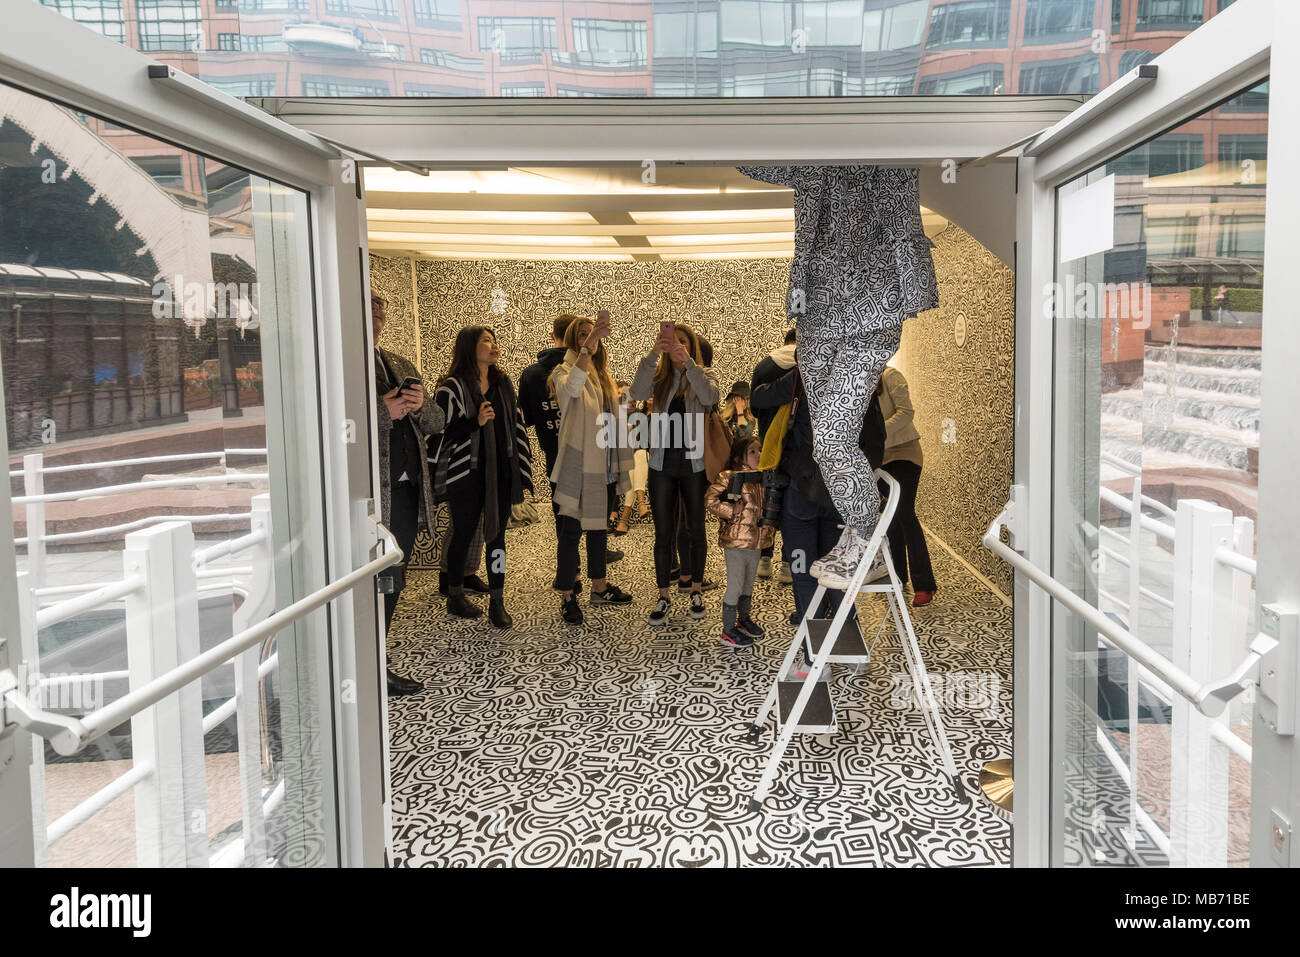 London, UK. 7 April 2018.  The artist Mr Doodle stands on a ladder creating his distinctive artwork in The Doodle Room at 'Sense of Space', an art pop-up which has opened to the public in Broadgate.  Comprising four rooms to challenge the visitor's sensory perceptions through art, the installation is open until 18 May.  Credit: Stephen Chung / Alamy Live News - Stock Image